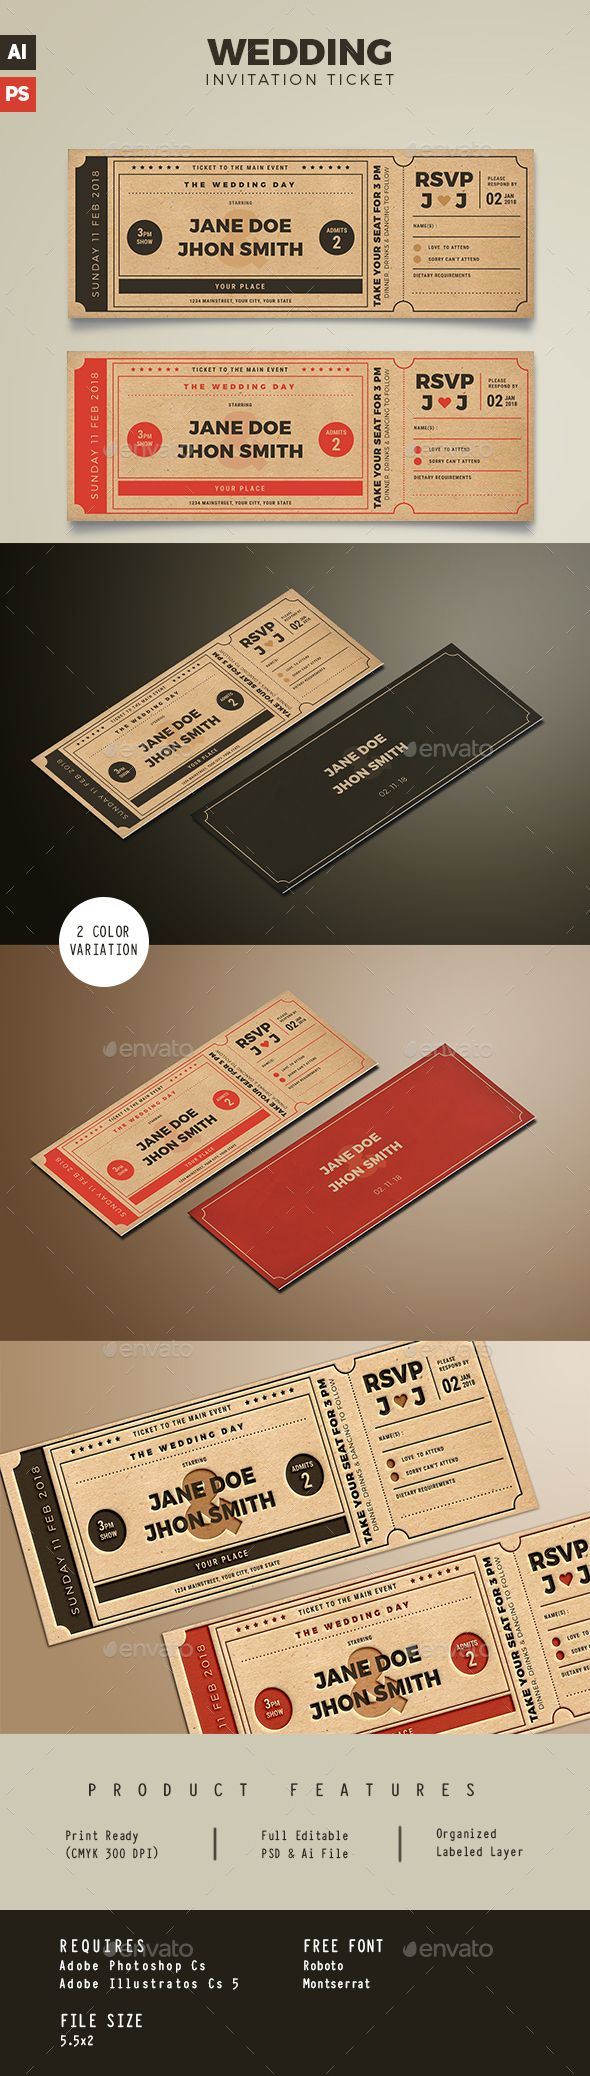 Wedding Invitation Movie Ticket by Vynetta02 FEATURESSize 5.5×2 bleed Well Organized Layer Print Ready CMYK 300 DPI Editable Text, image, font, Color 2 ALTERNATIVE COLORS FO